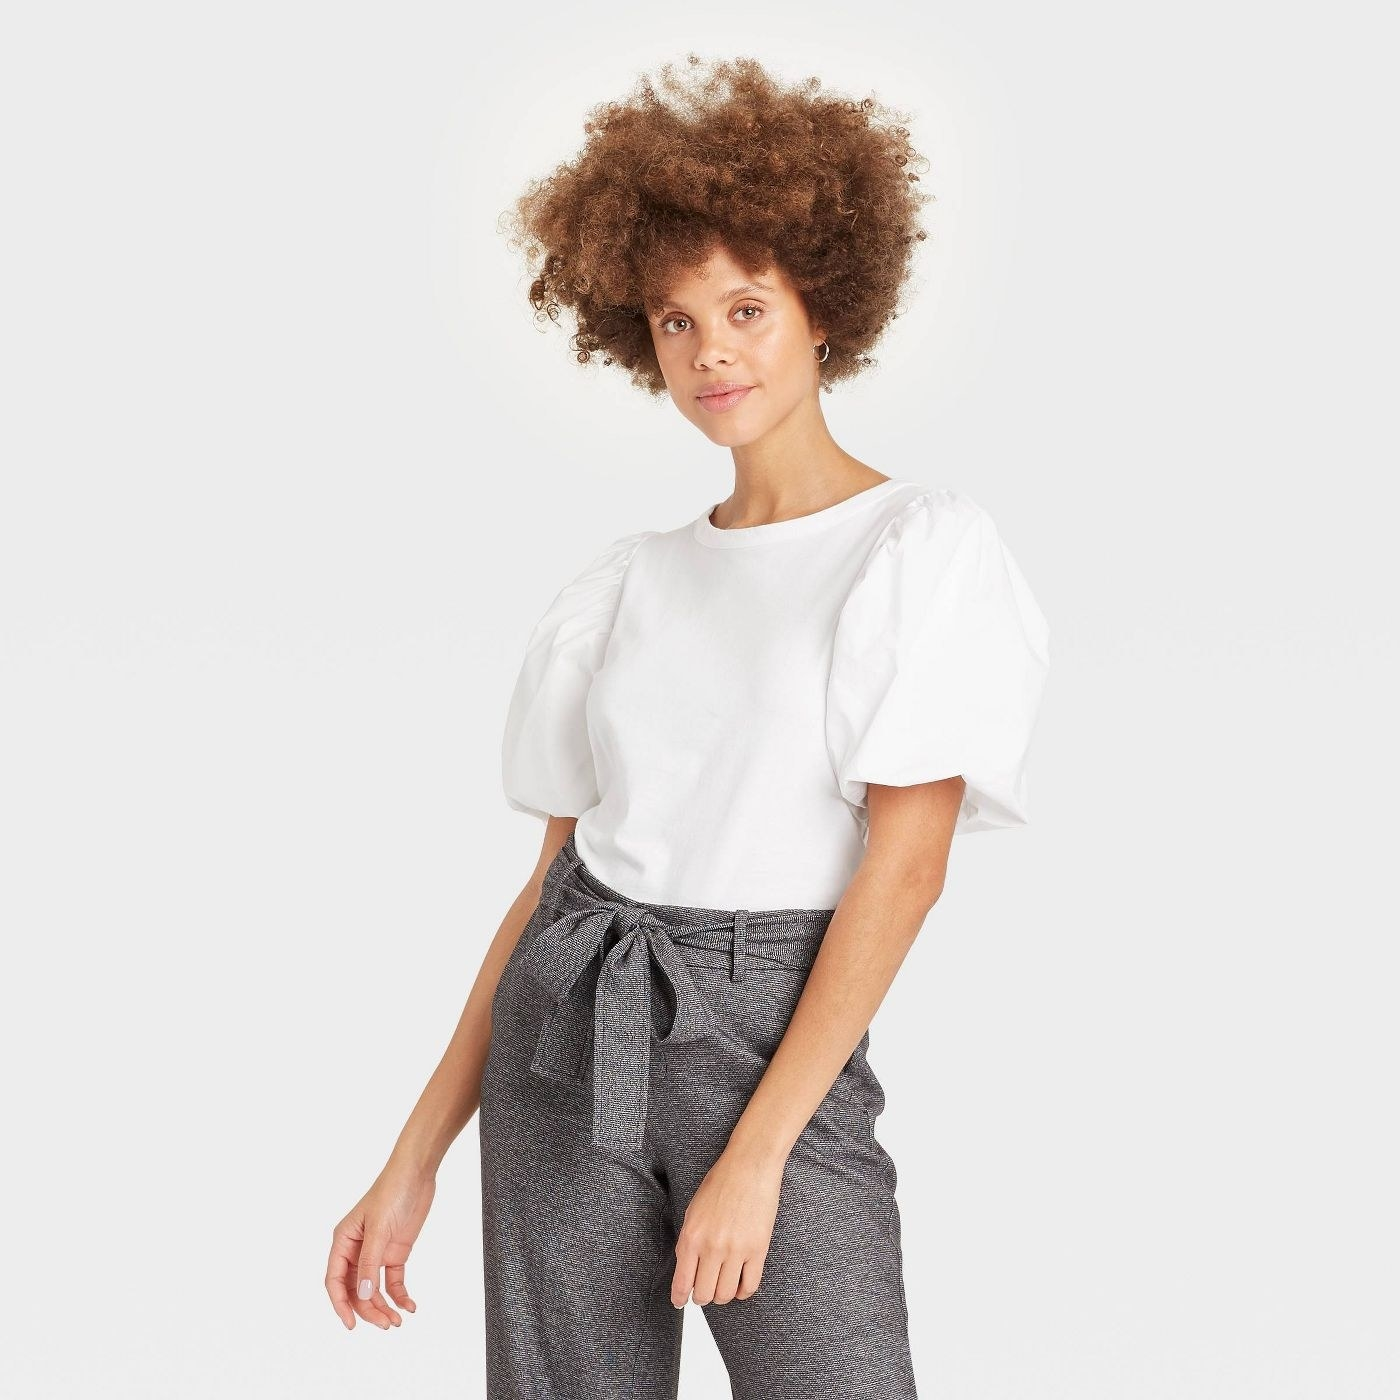 Model in puff sleeve t-shirt